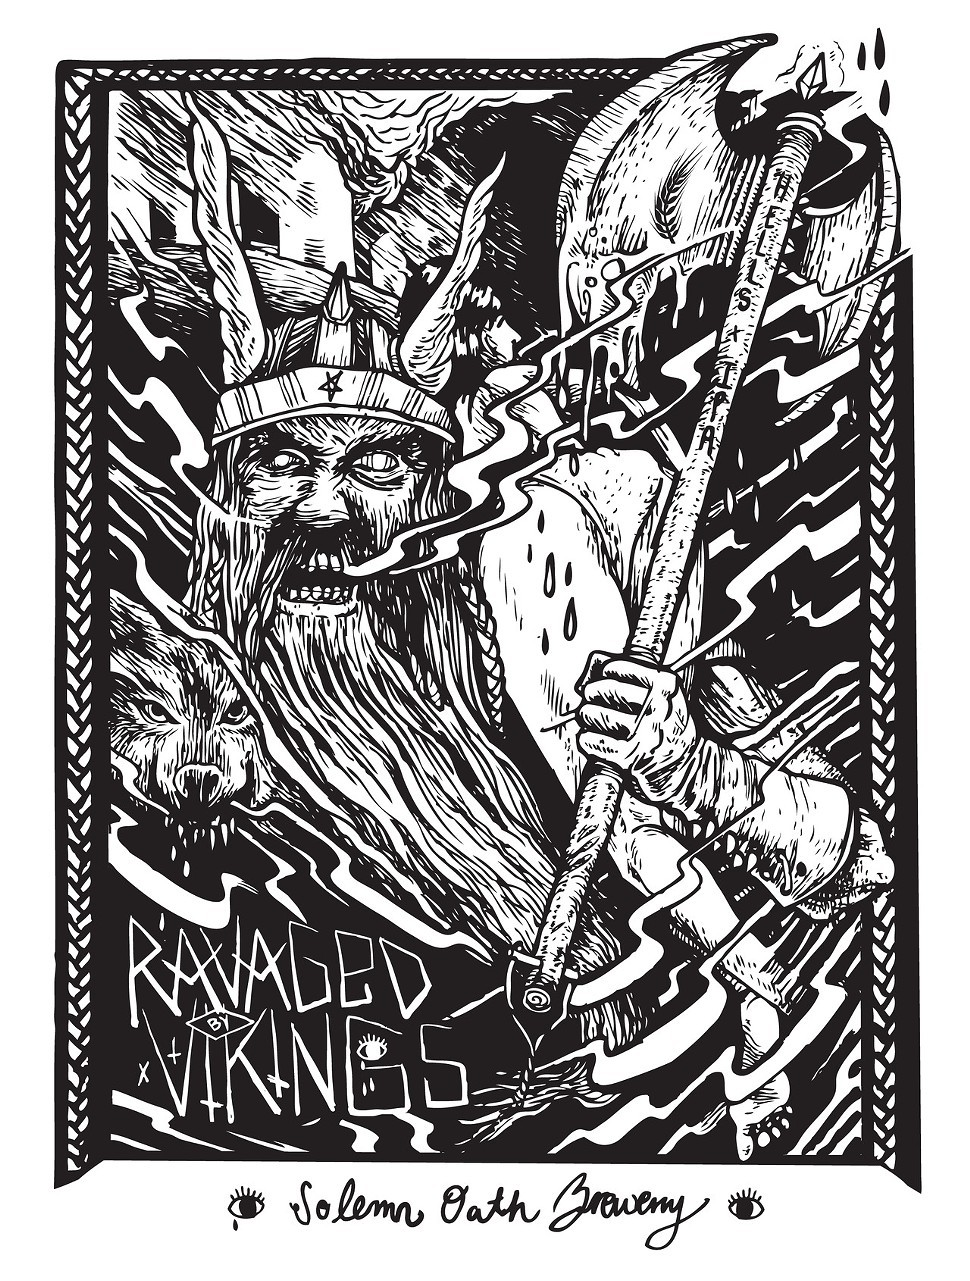 Jourdon Gulletts artwork for Ravaged by Vikings